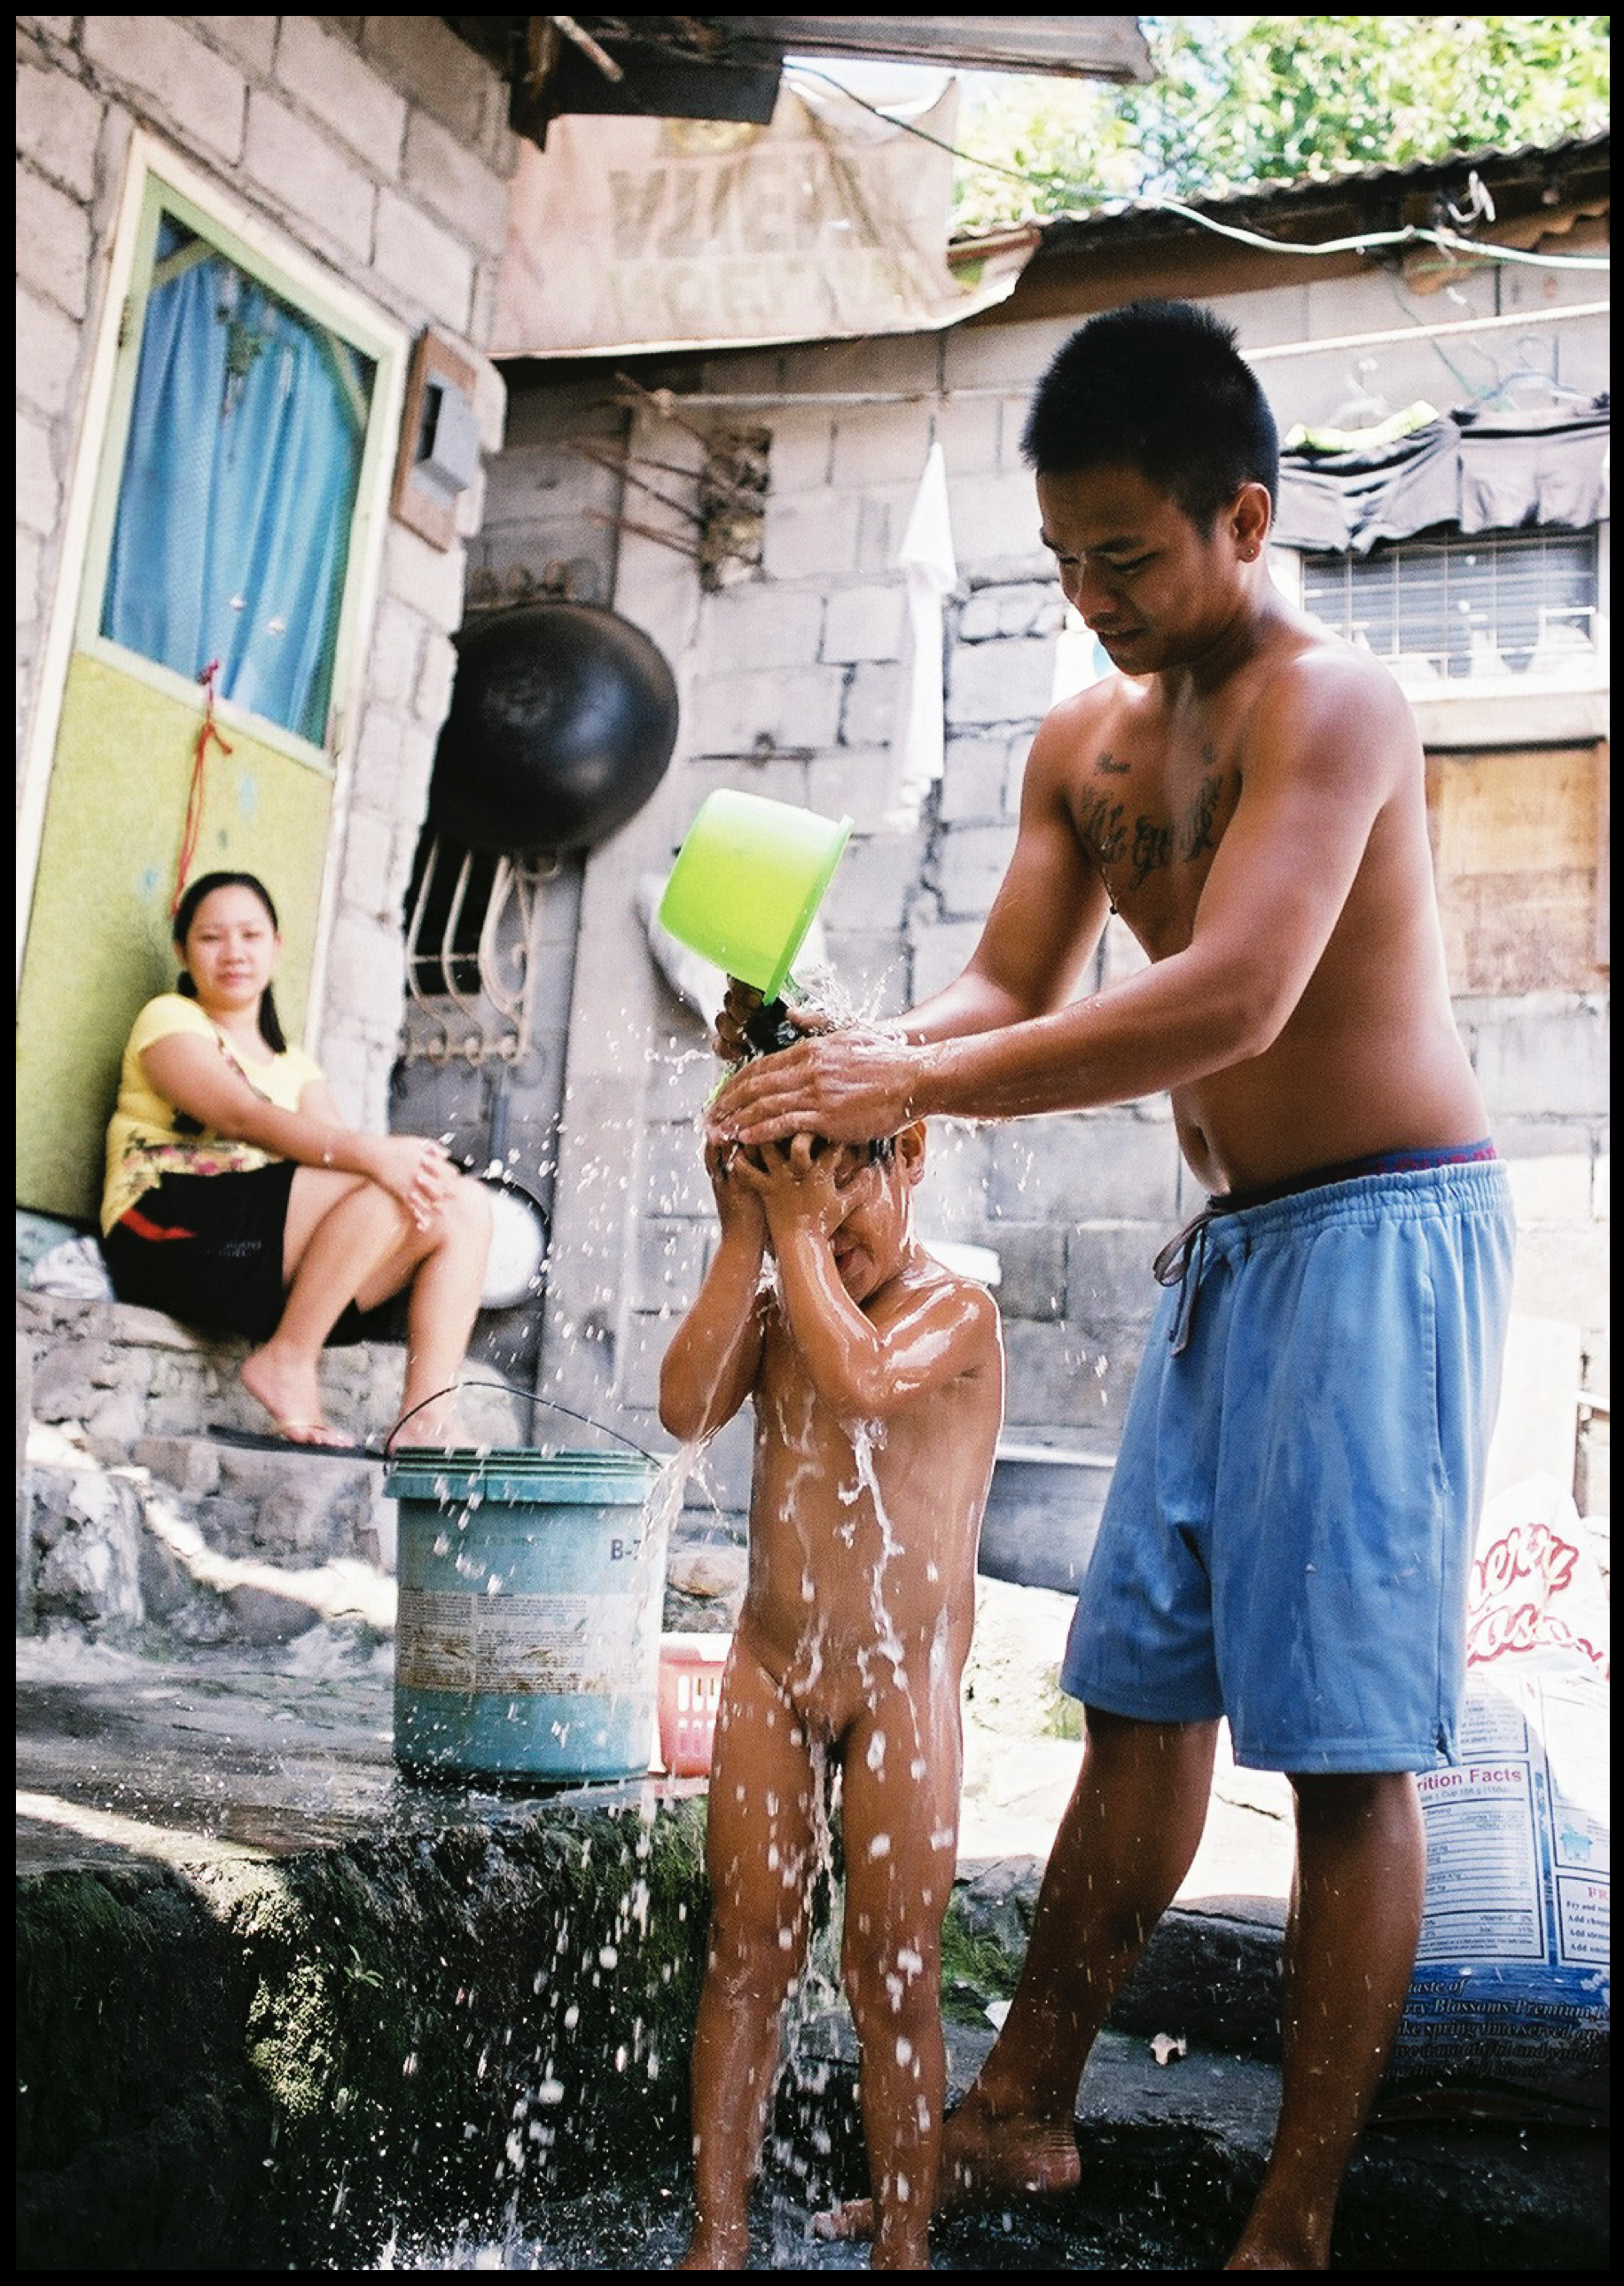 CoxCo_daily_life_Philippines_02 2019-08-12 0.43.21.png